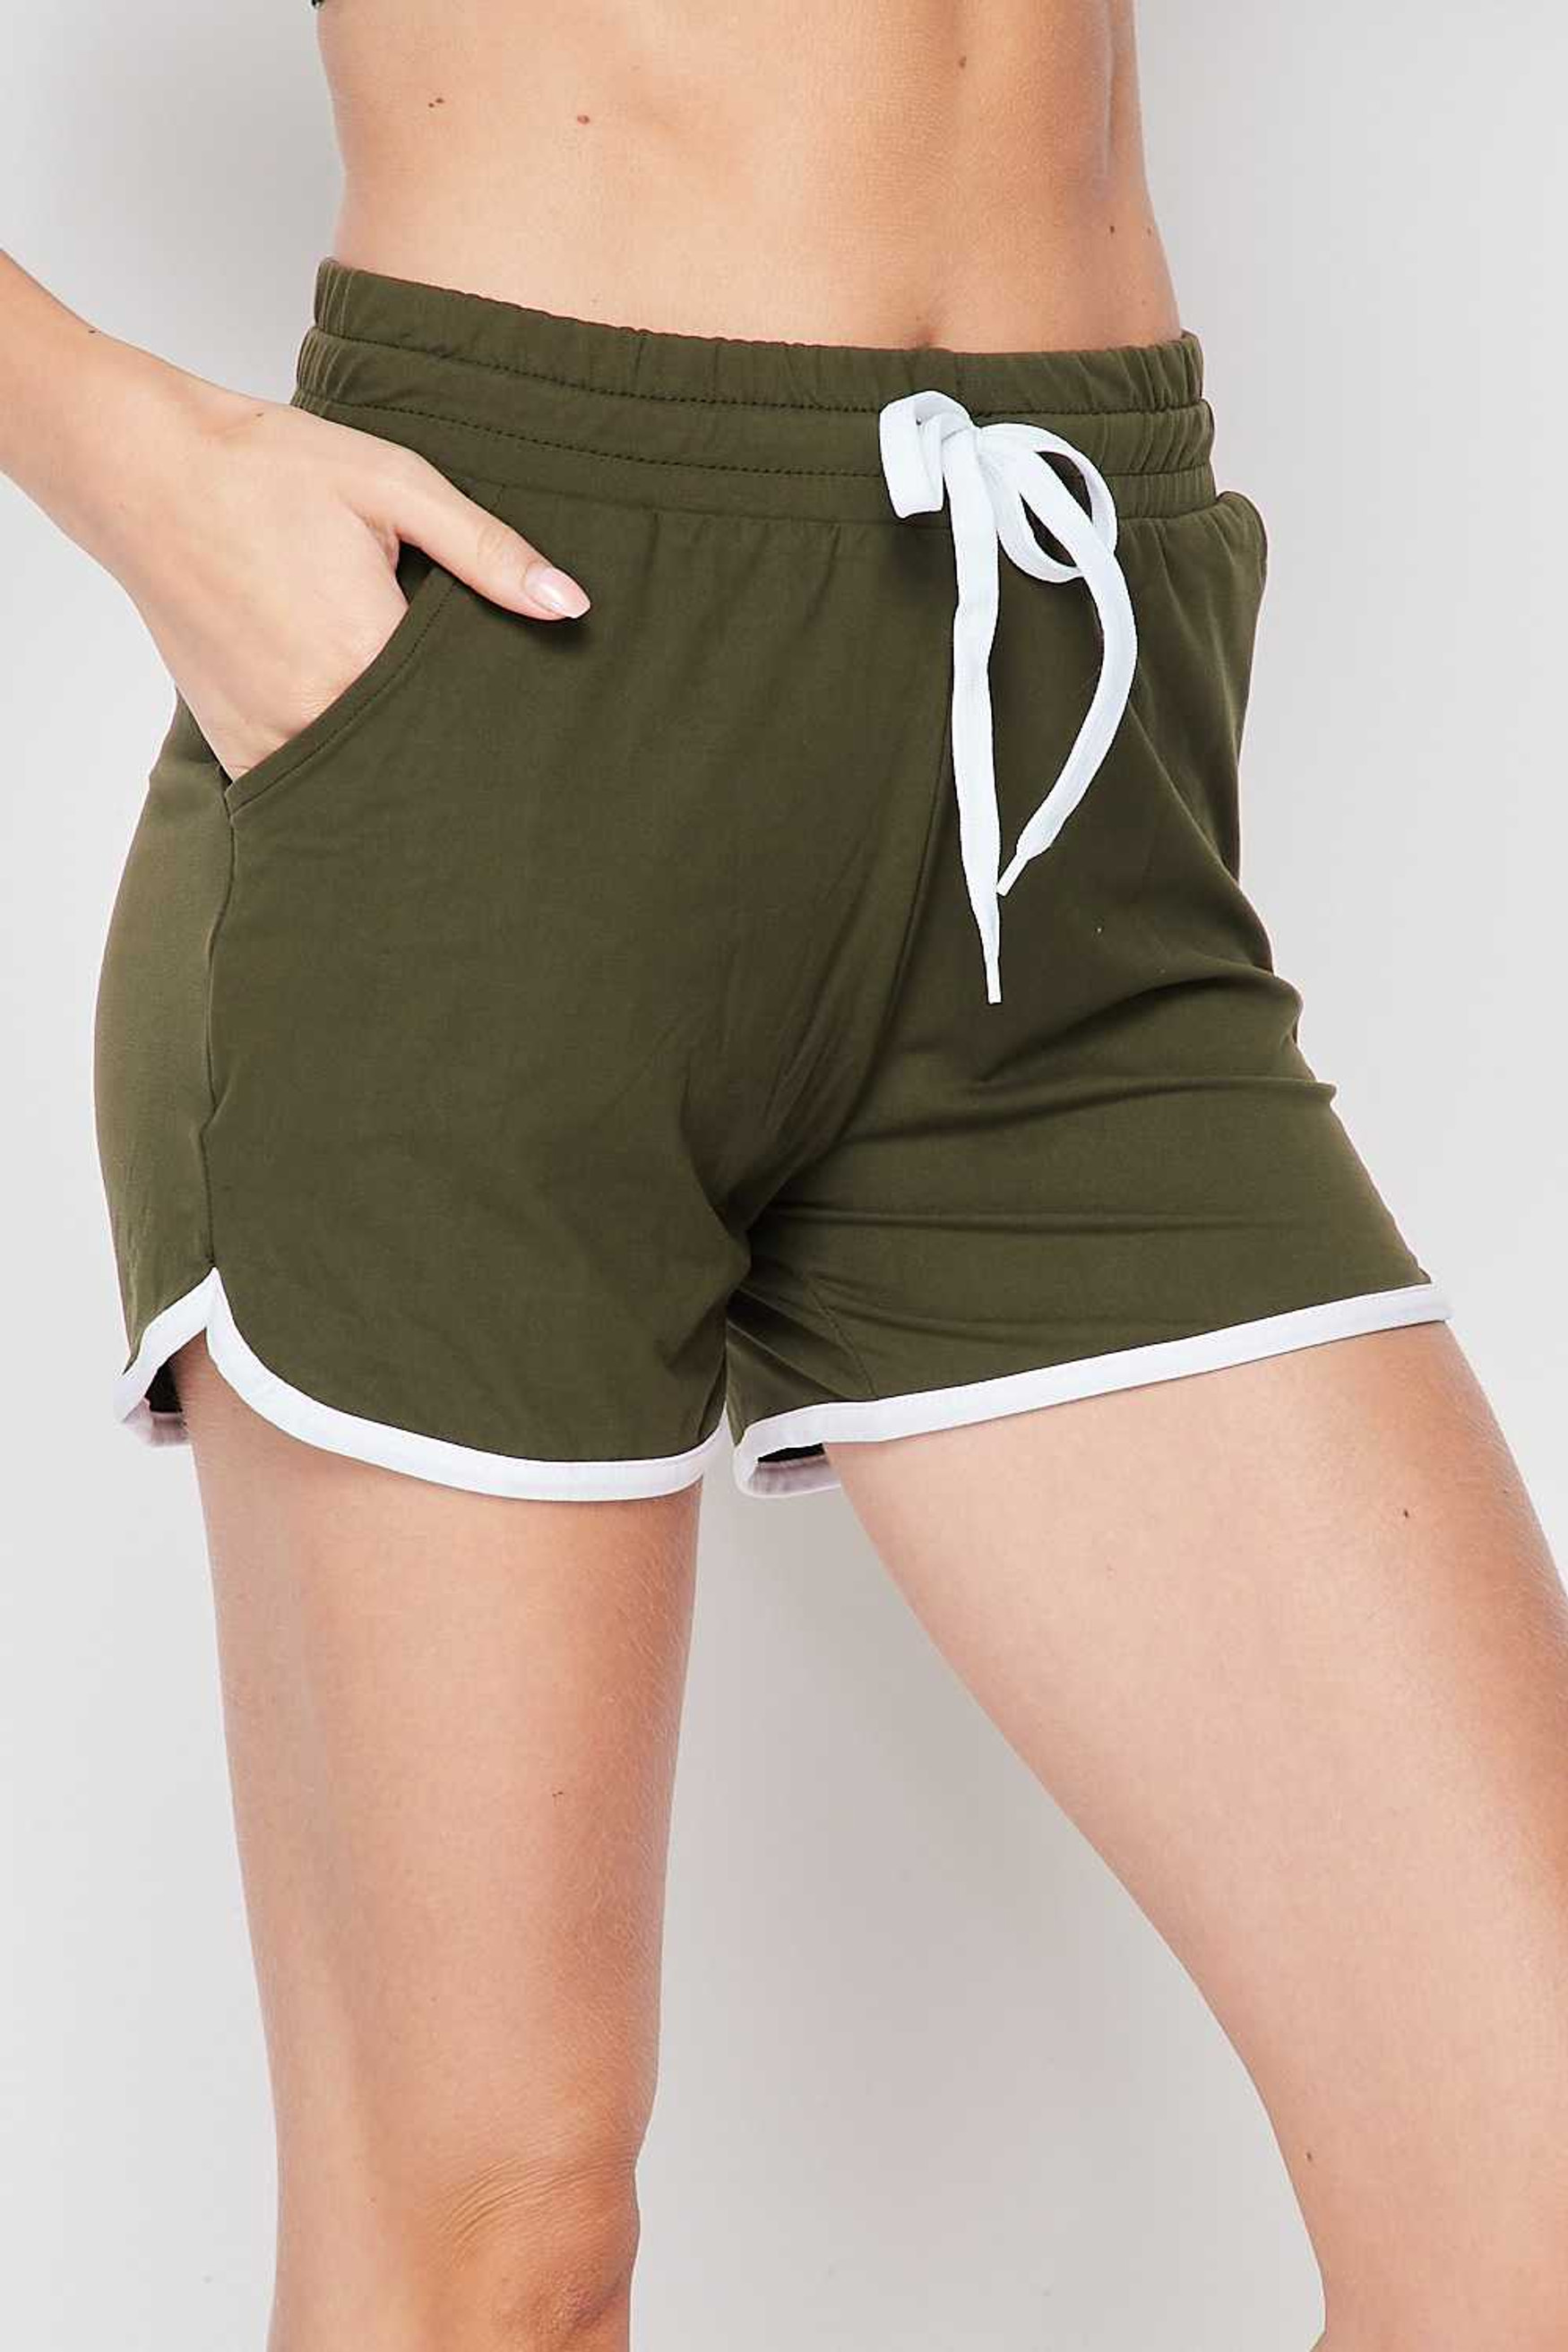 45 degree front/right side  of Olive Buttery Soft Drawstring Waist Plus Size Dolphin Shorts with Pockets